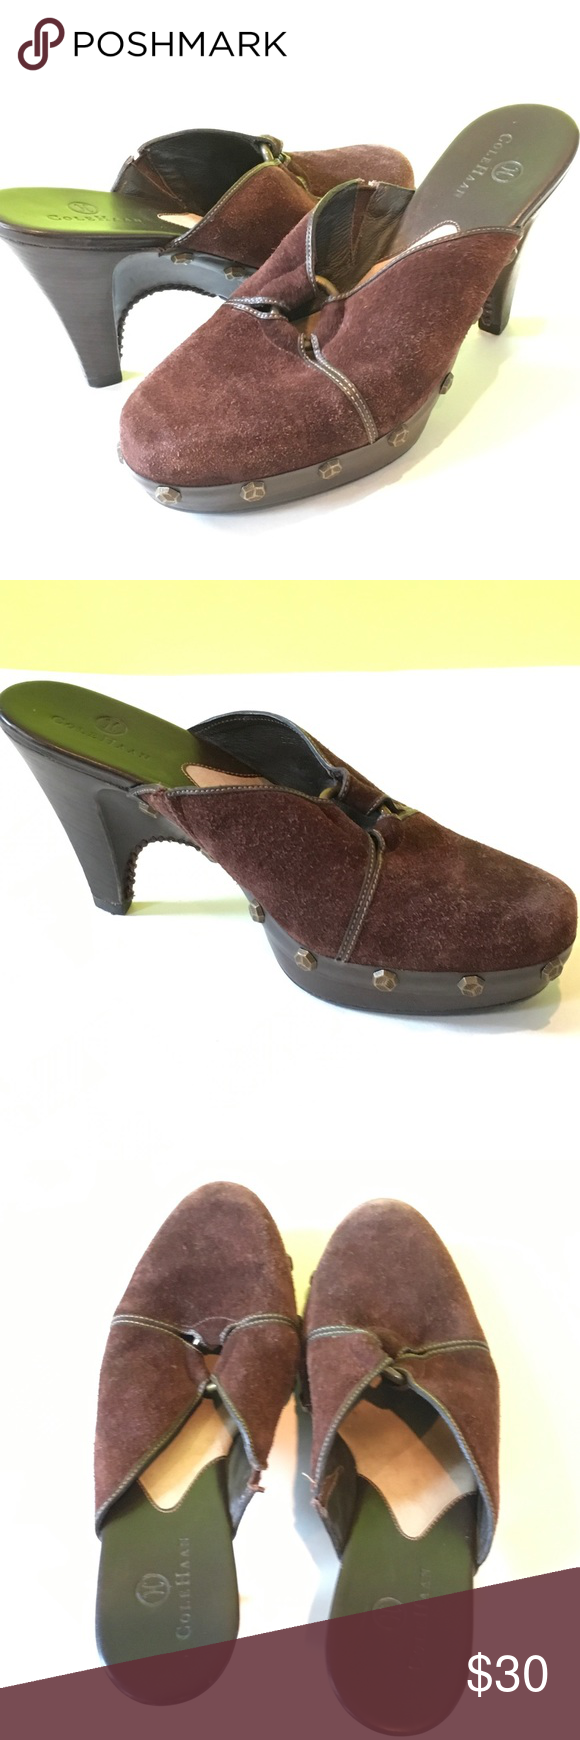 """Cole Haan Brown Suede Studded Mules Brown Suede clog/Mules with copper stud accents and Center ring. Heel is about 3 3/4"""" and wooden platform is about 3/4"""". Size is 6B. Toes are a bit worn, mild signs of wear otherwise. Cole Haan Shoes Mules & Clogs"""